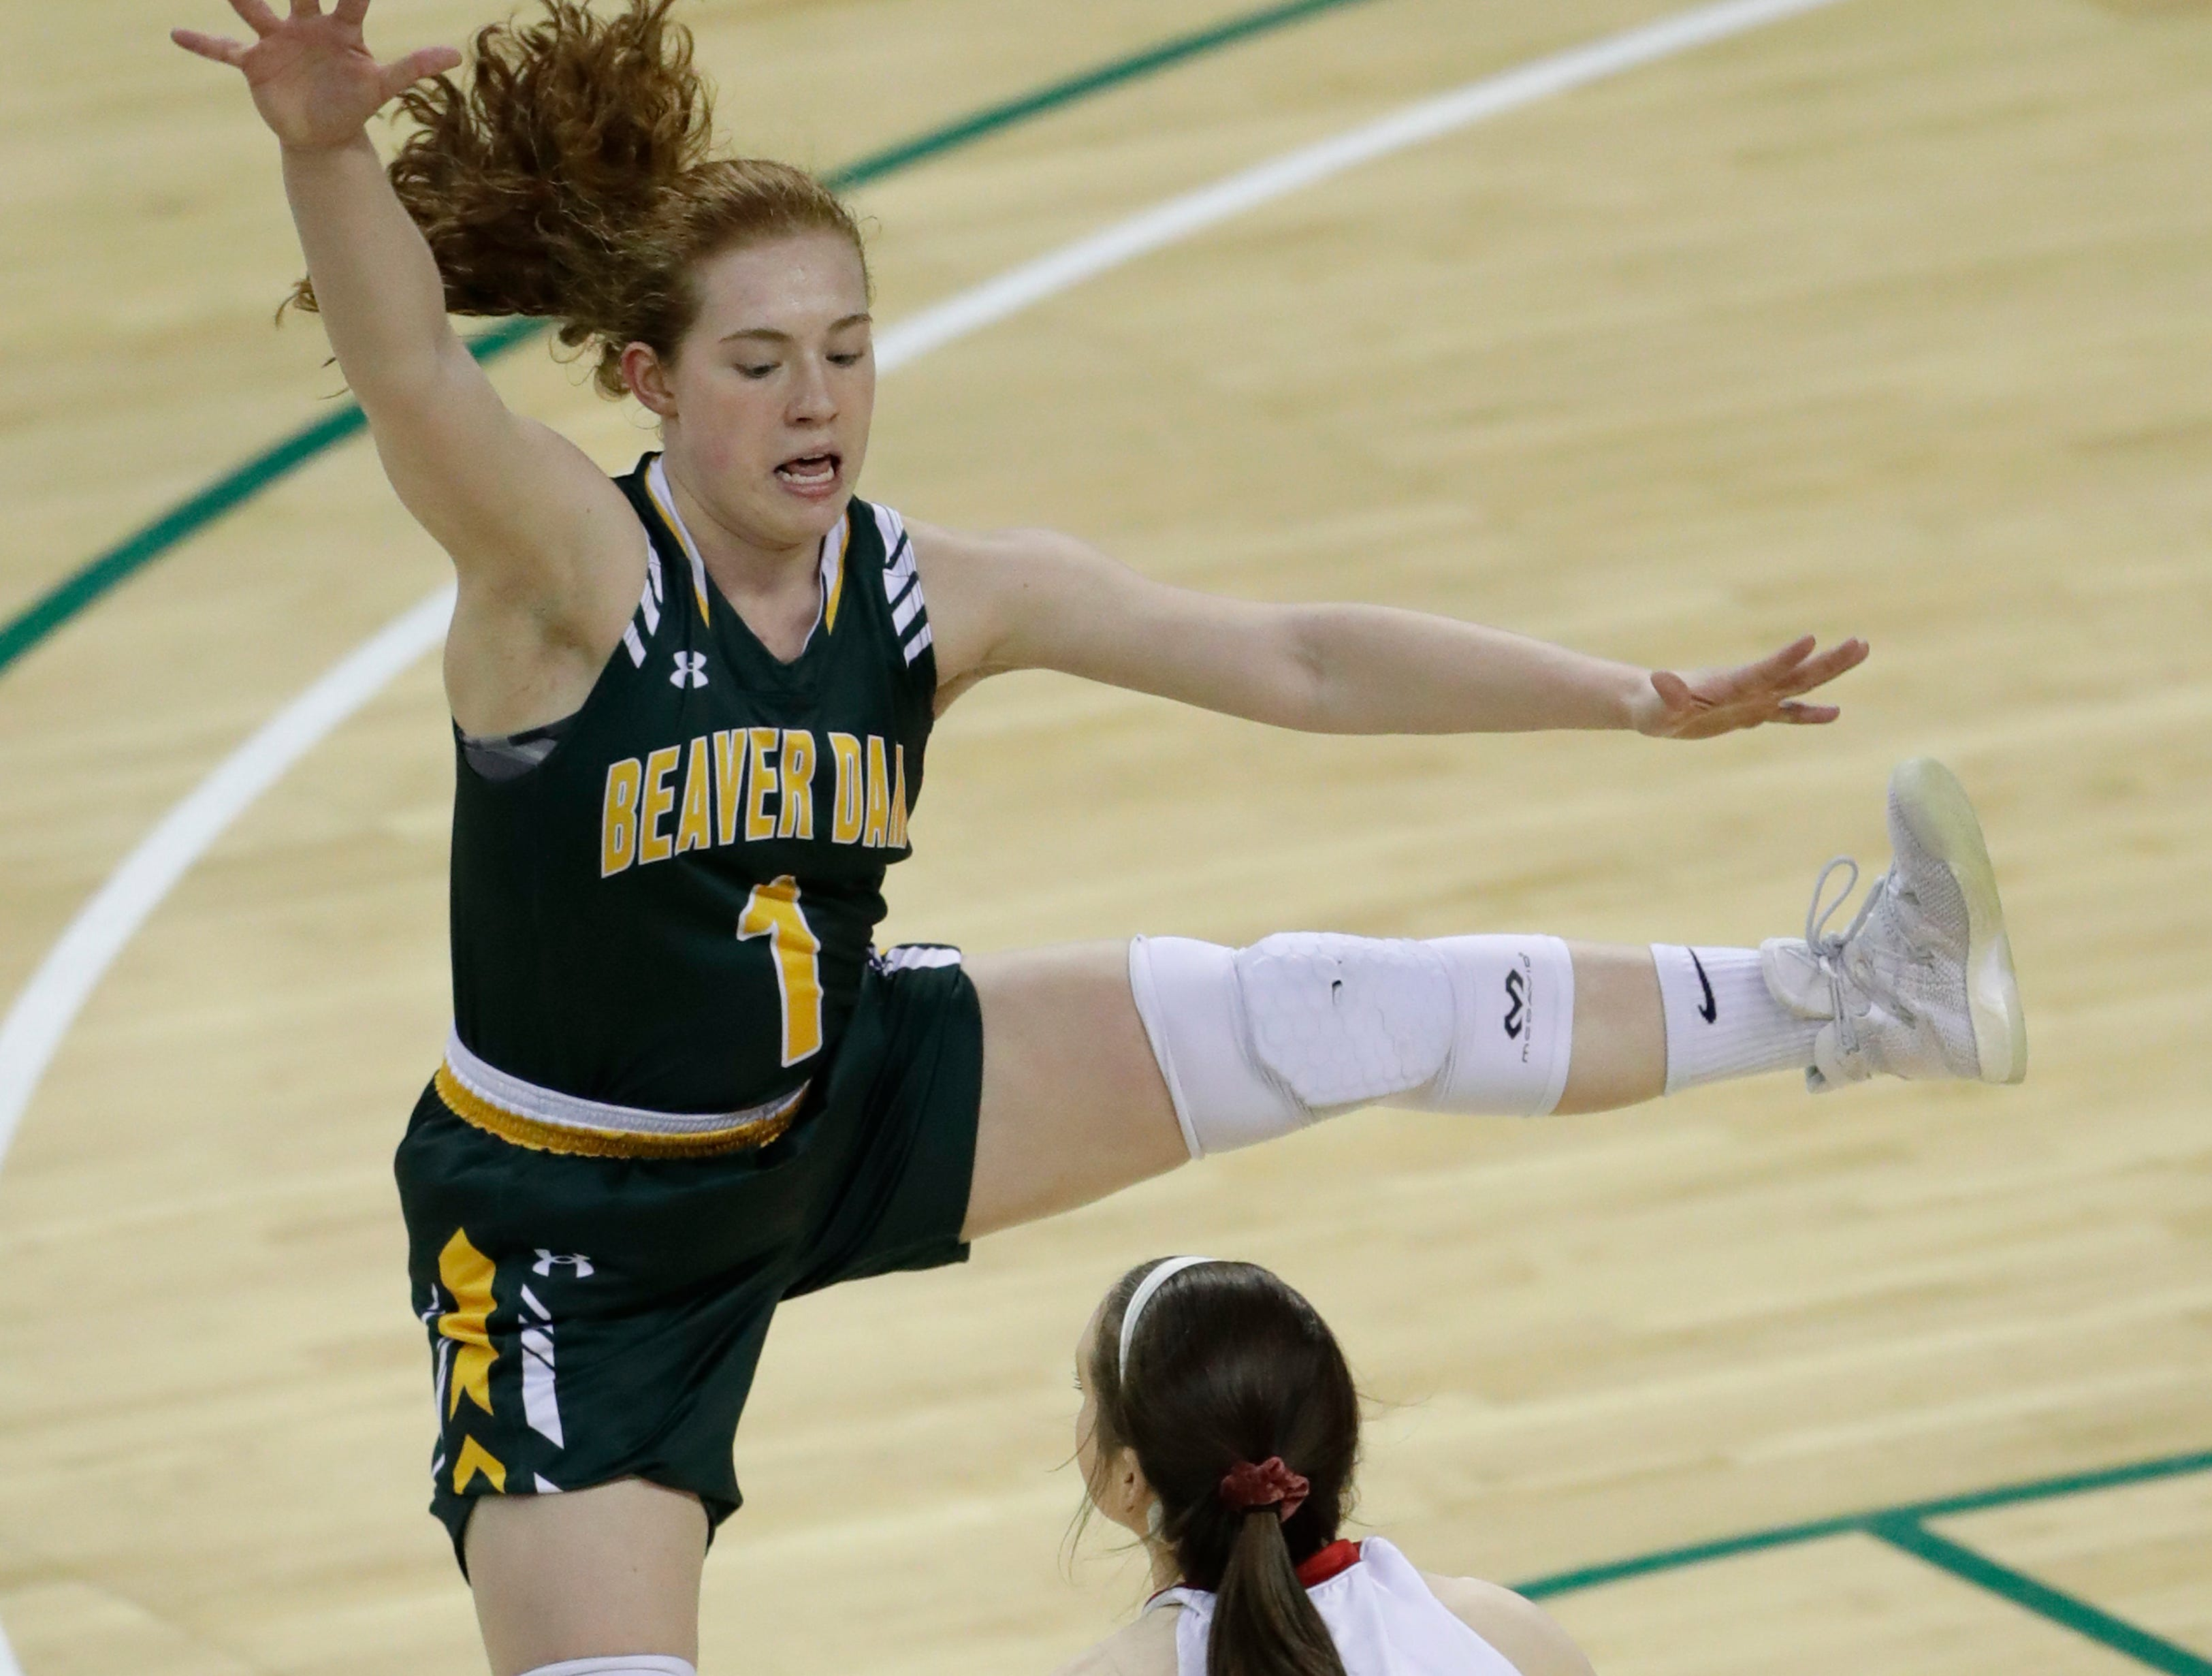 Beaver Dam's Natalie Jens (1) defends against Hortonville's Emily Nelson (21) during their Division 2 semifinal game at the WIAA girls state basketball tournament Friday, March 8, 2019, at the Resch Center in Ashwaubenon, Wis. Dan Powers/USA TODAY NETWORK-Wisconsin